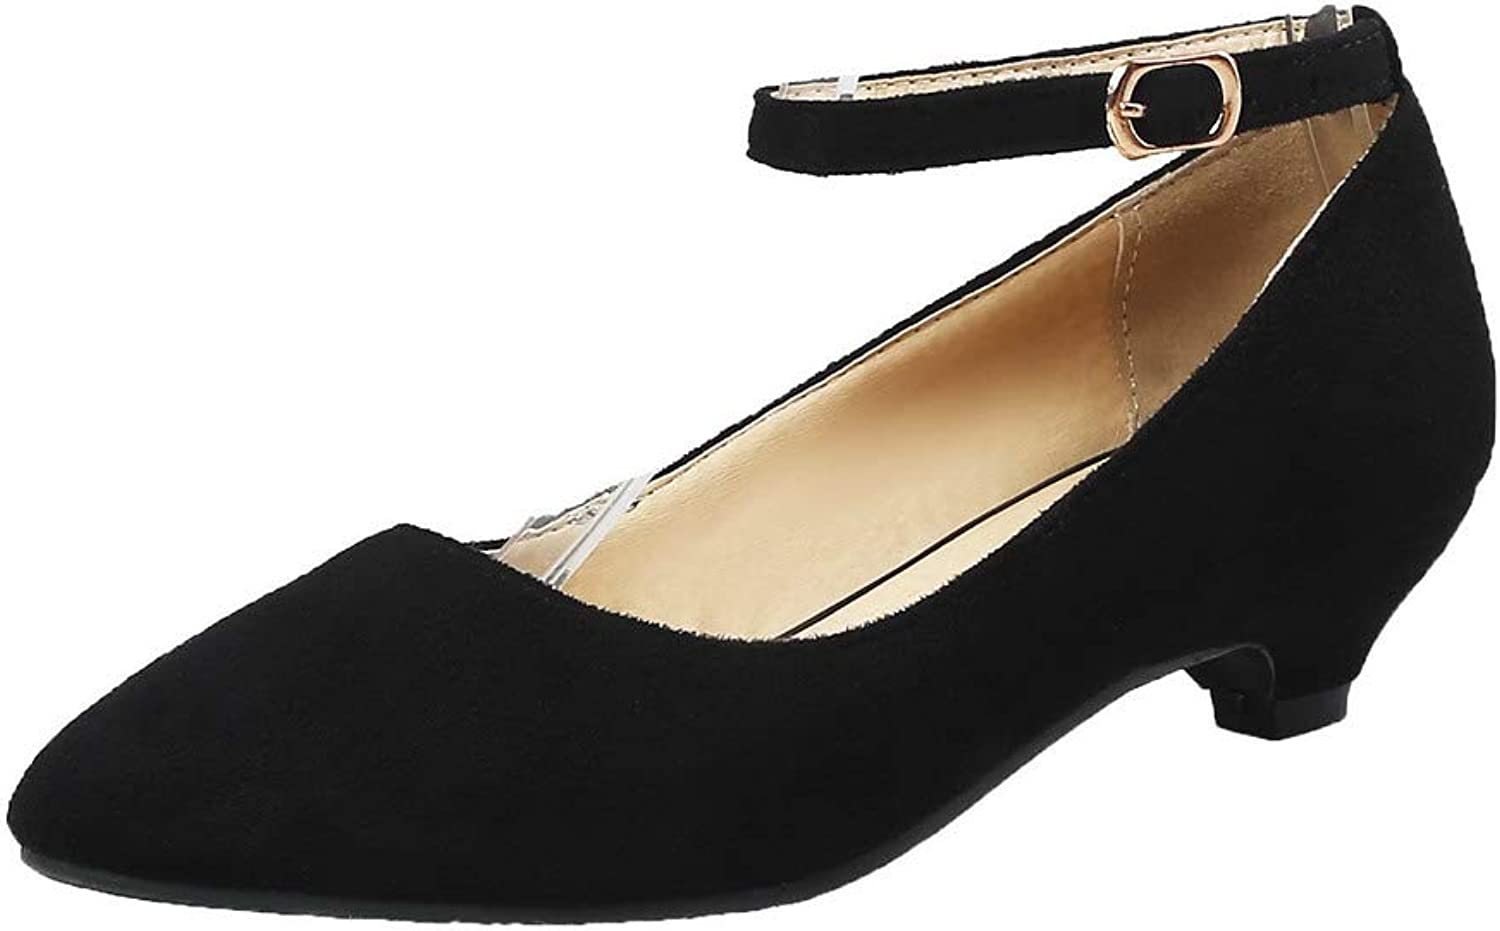 WeenFashion Women's Low-Heels Buckle Imitated Suede Pointed-Toe Pumps-shoes,AMGDW010754